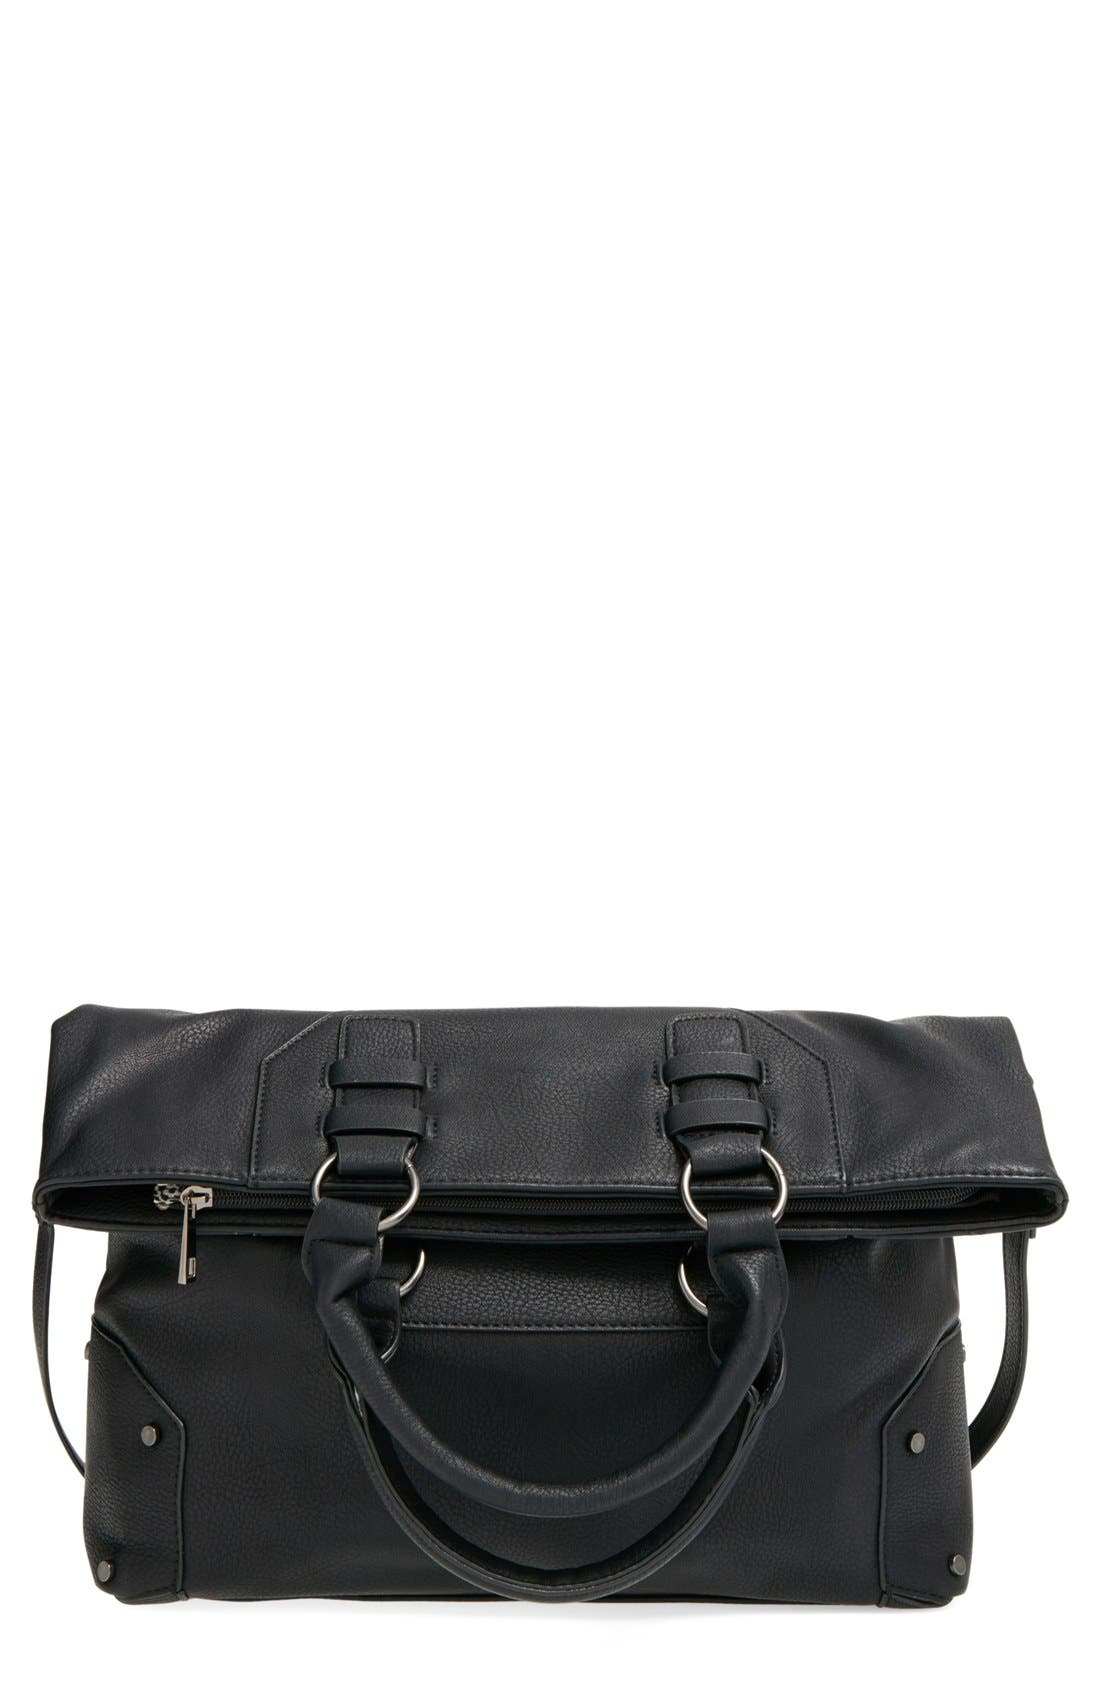 Alternate Image 1 Selected - Sole Society 'Monze' Faux Leather Foldover Tote